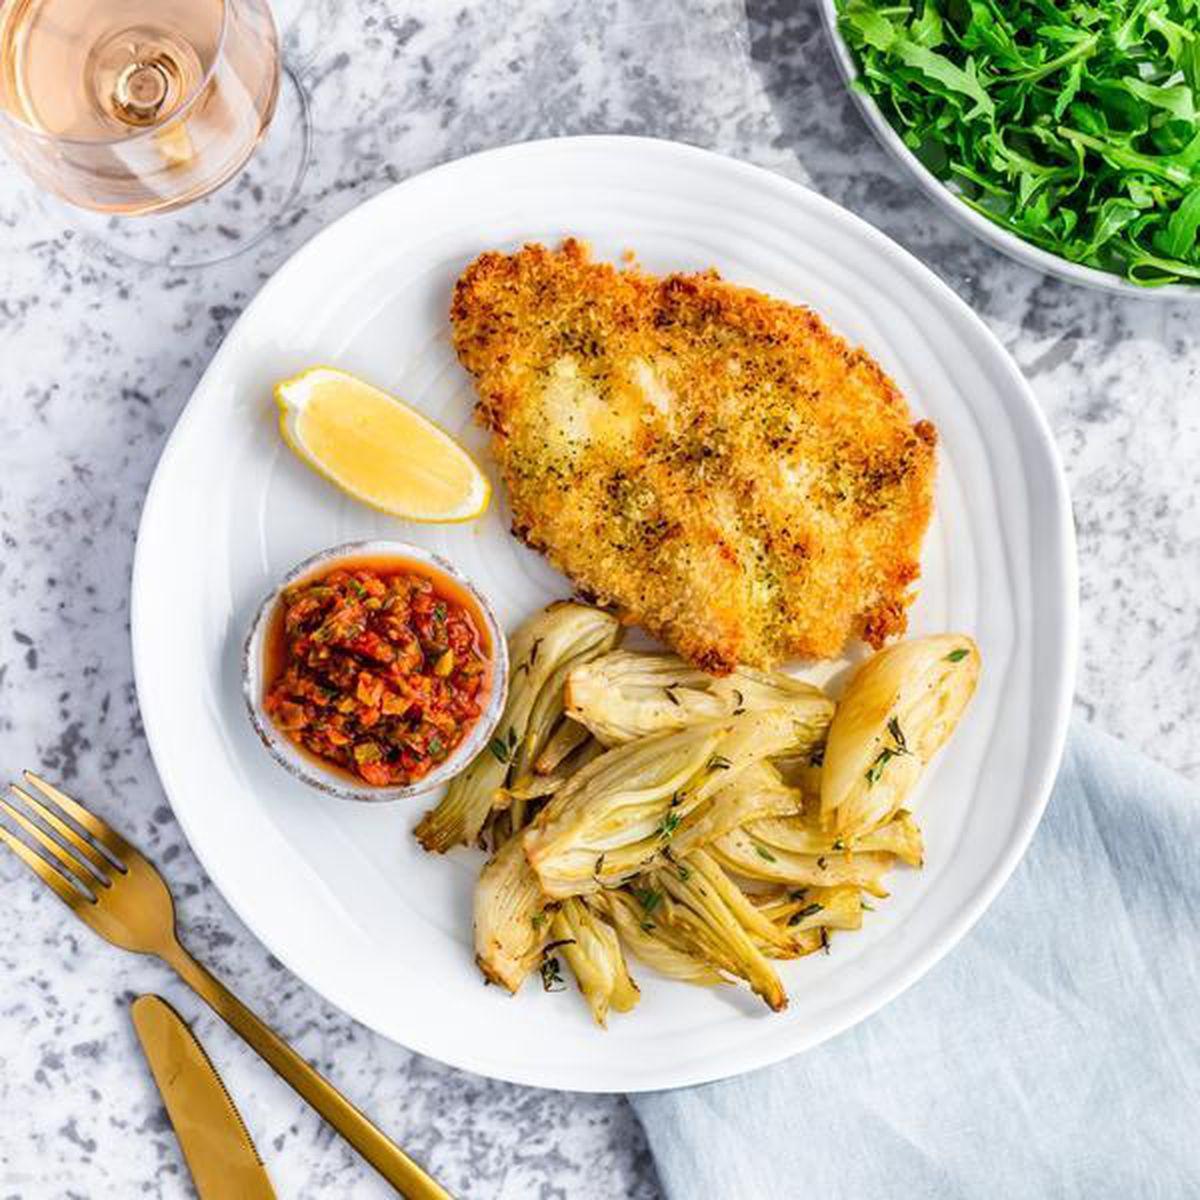 Chicken escalope with fennel and relish